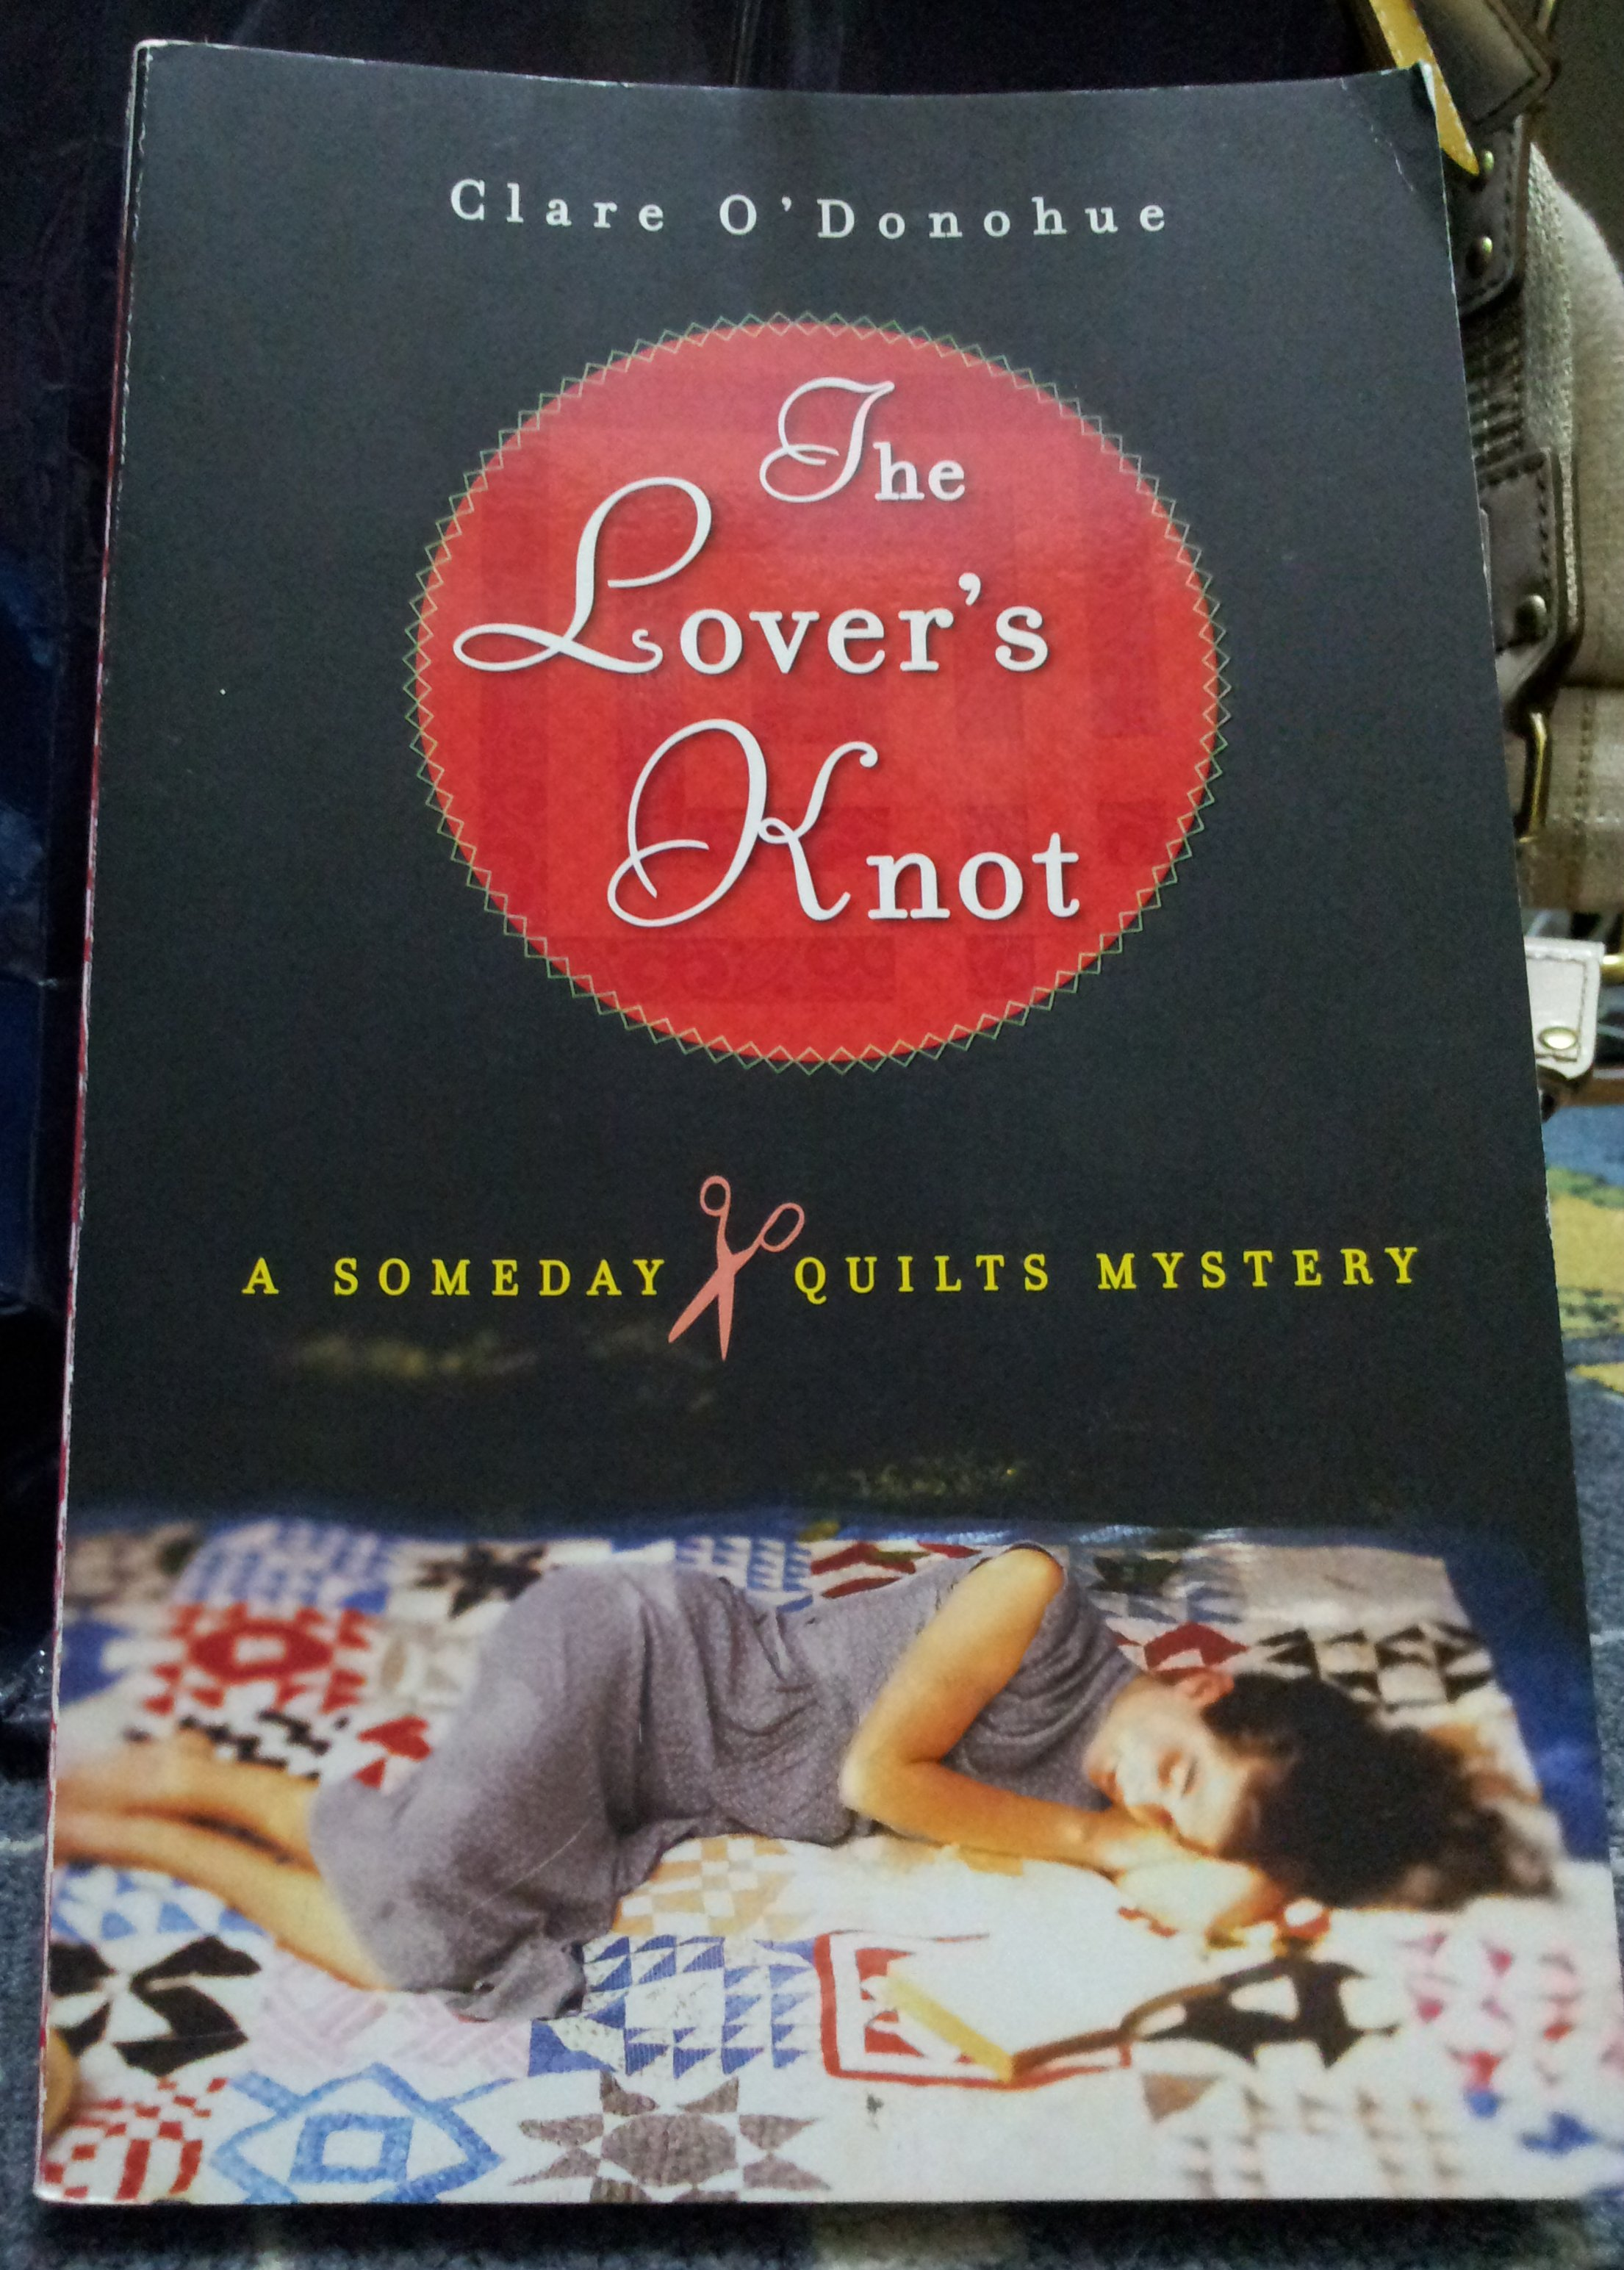 FOR SALE: The Lover's Knot: A Someday Quilts Mystery